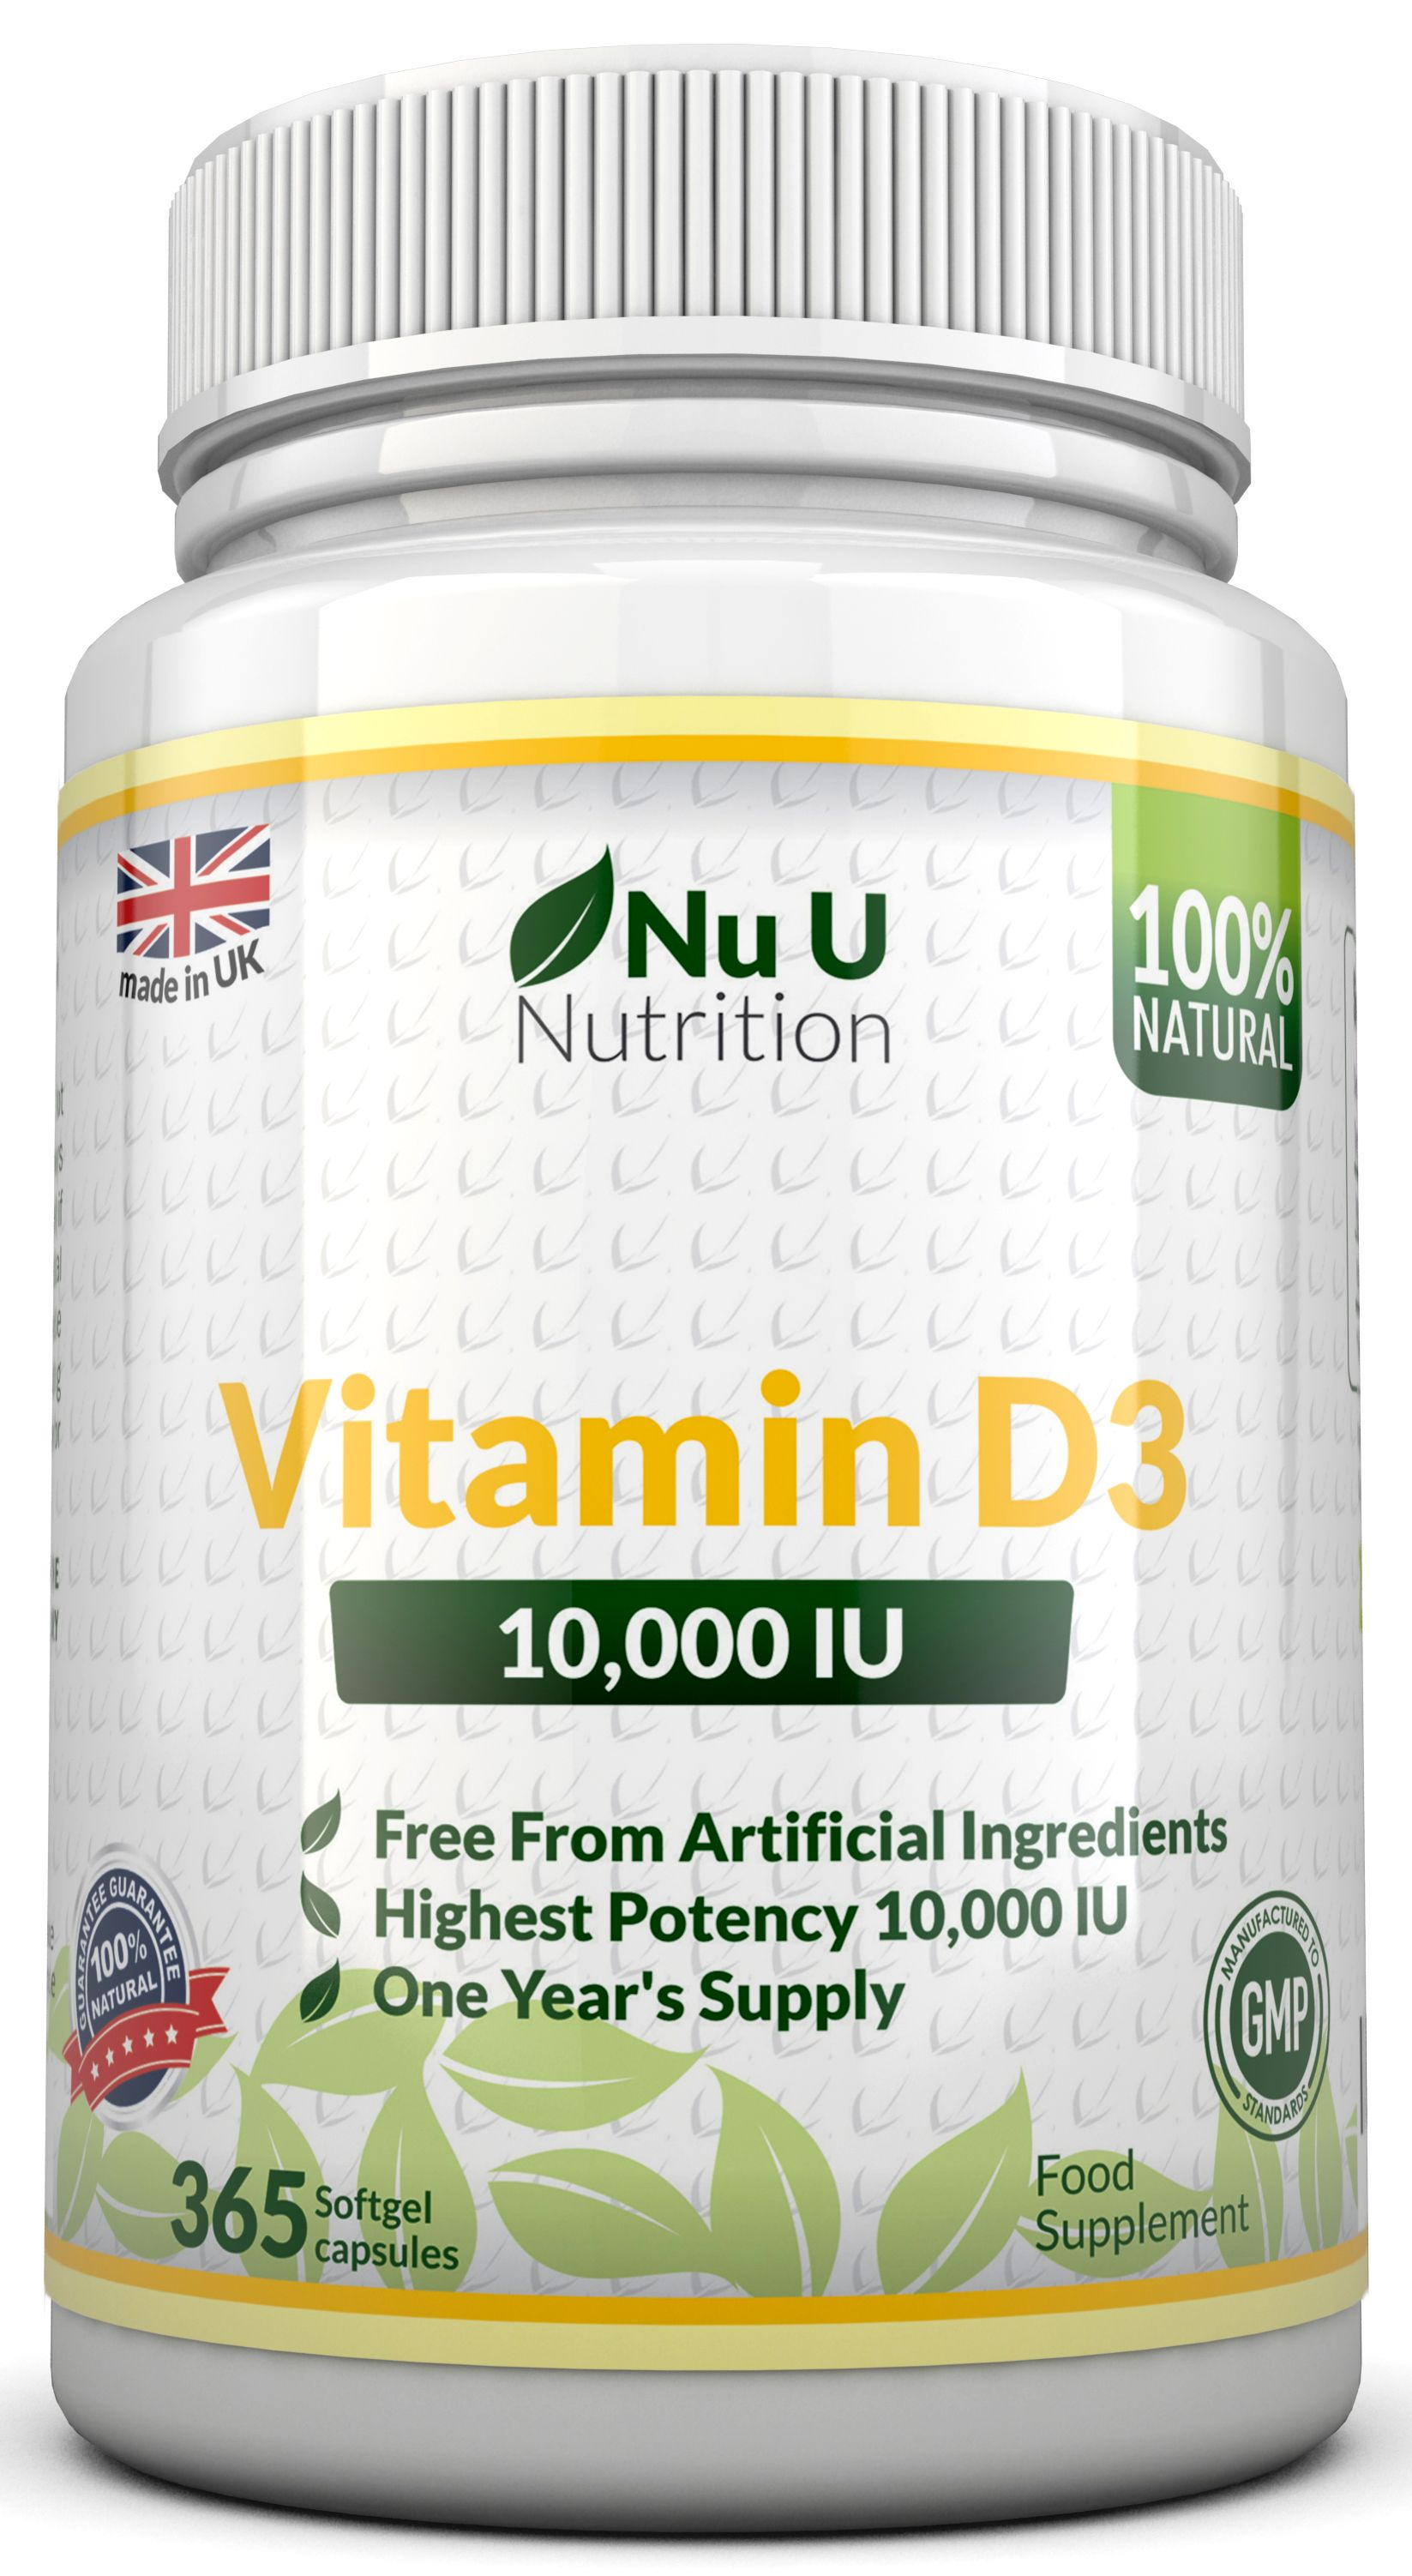 Vitamin D3 10,000iu Nu U Nutrition Vitamin D3 gives people a boost to their  vitamin